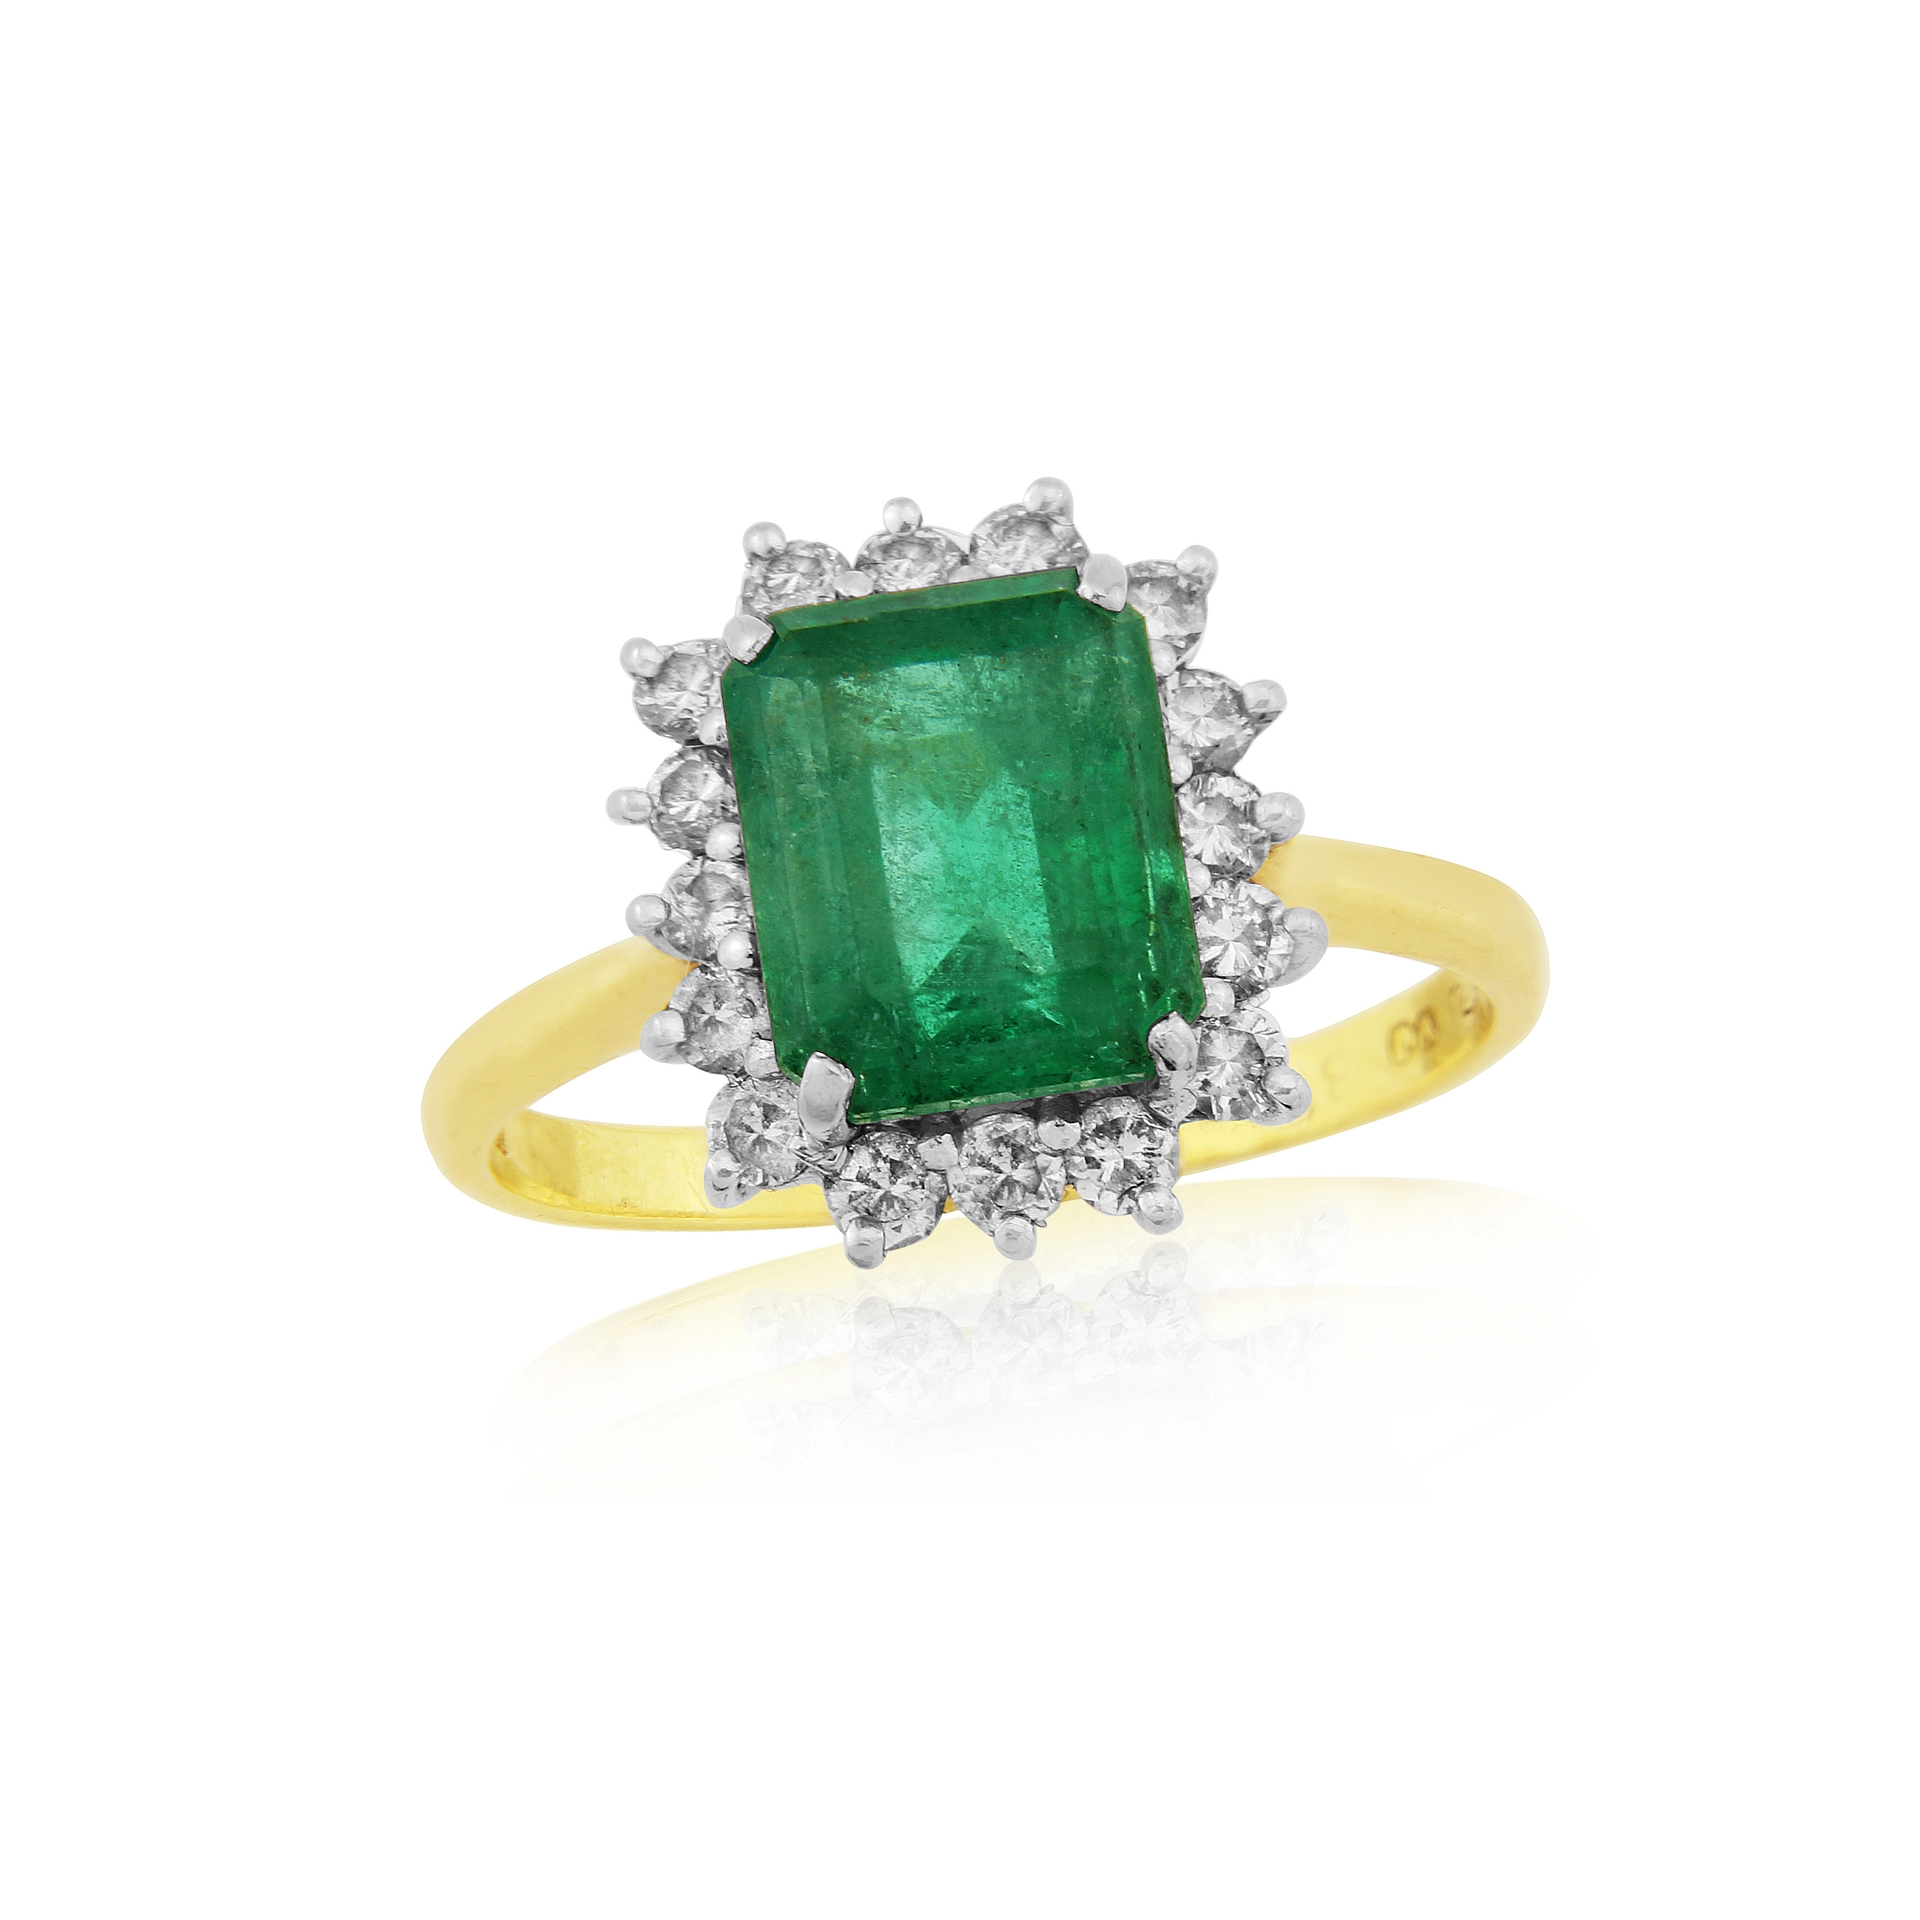 Previously Owned 18ct yellow gold emerald and diamond ring